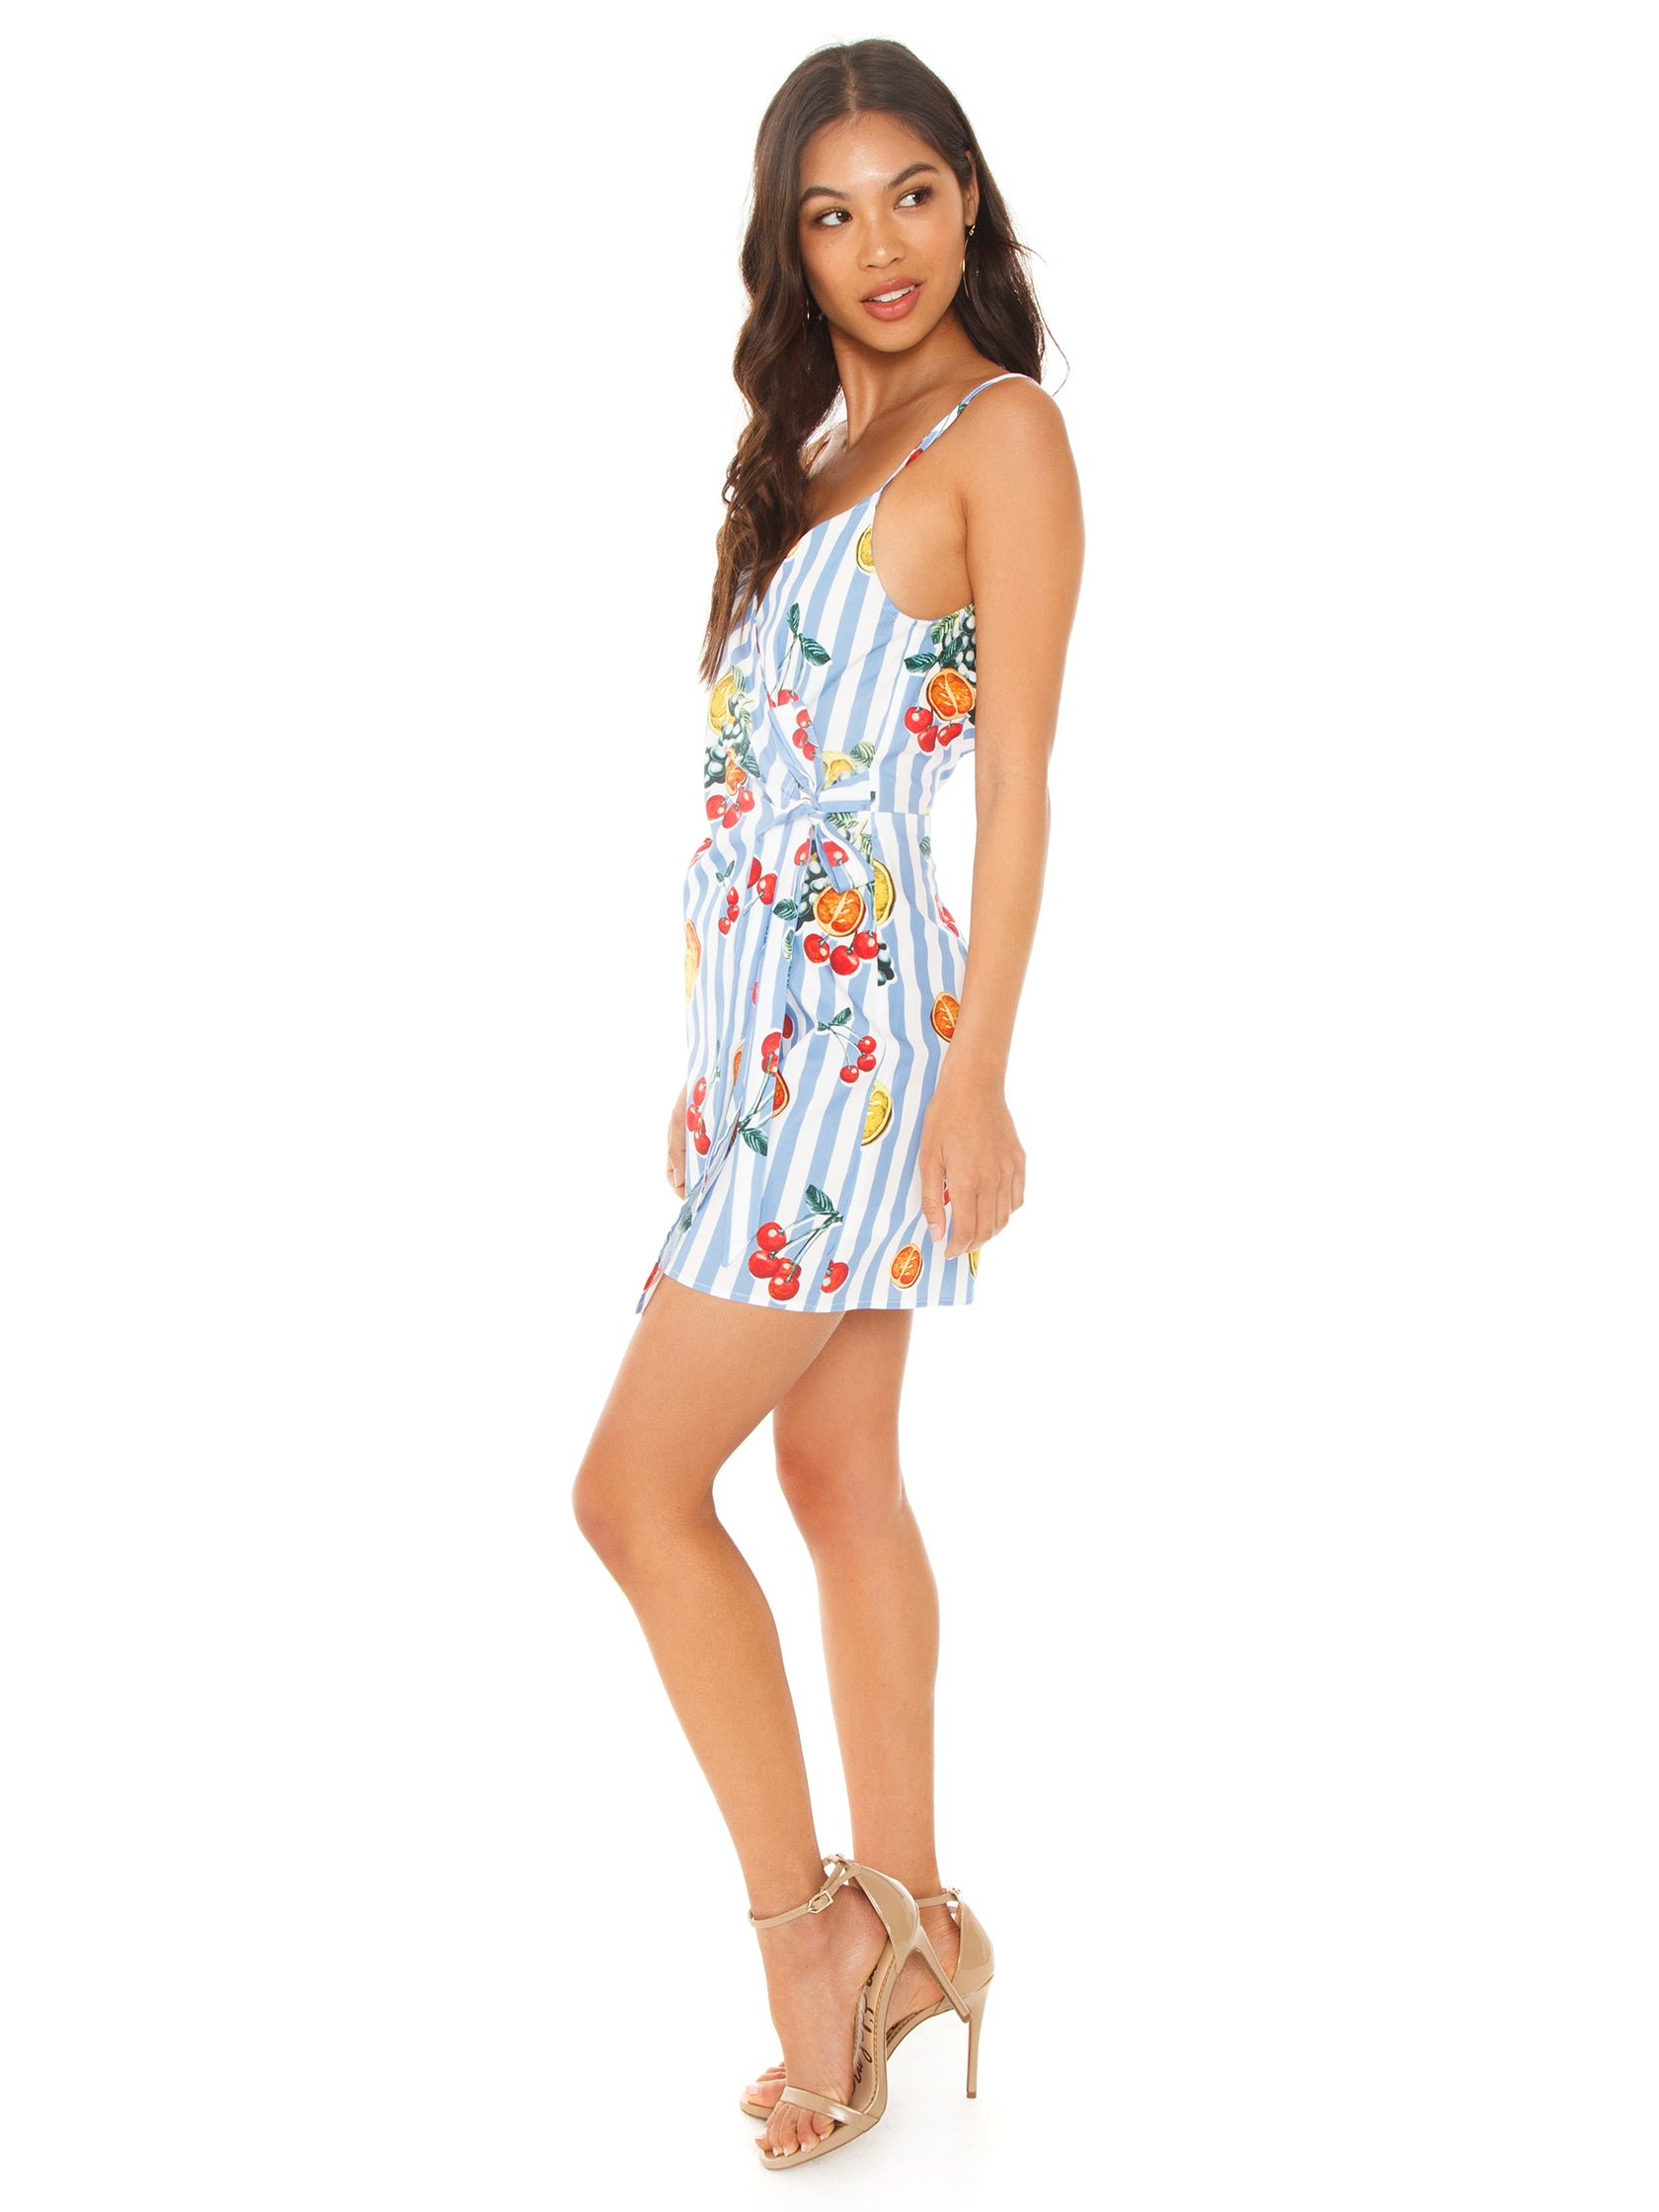 Woman wearing a romper rental from Show Me Your Mumu called Addison Romper